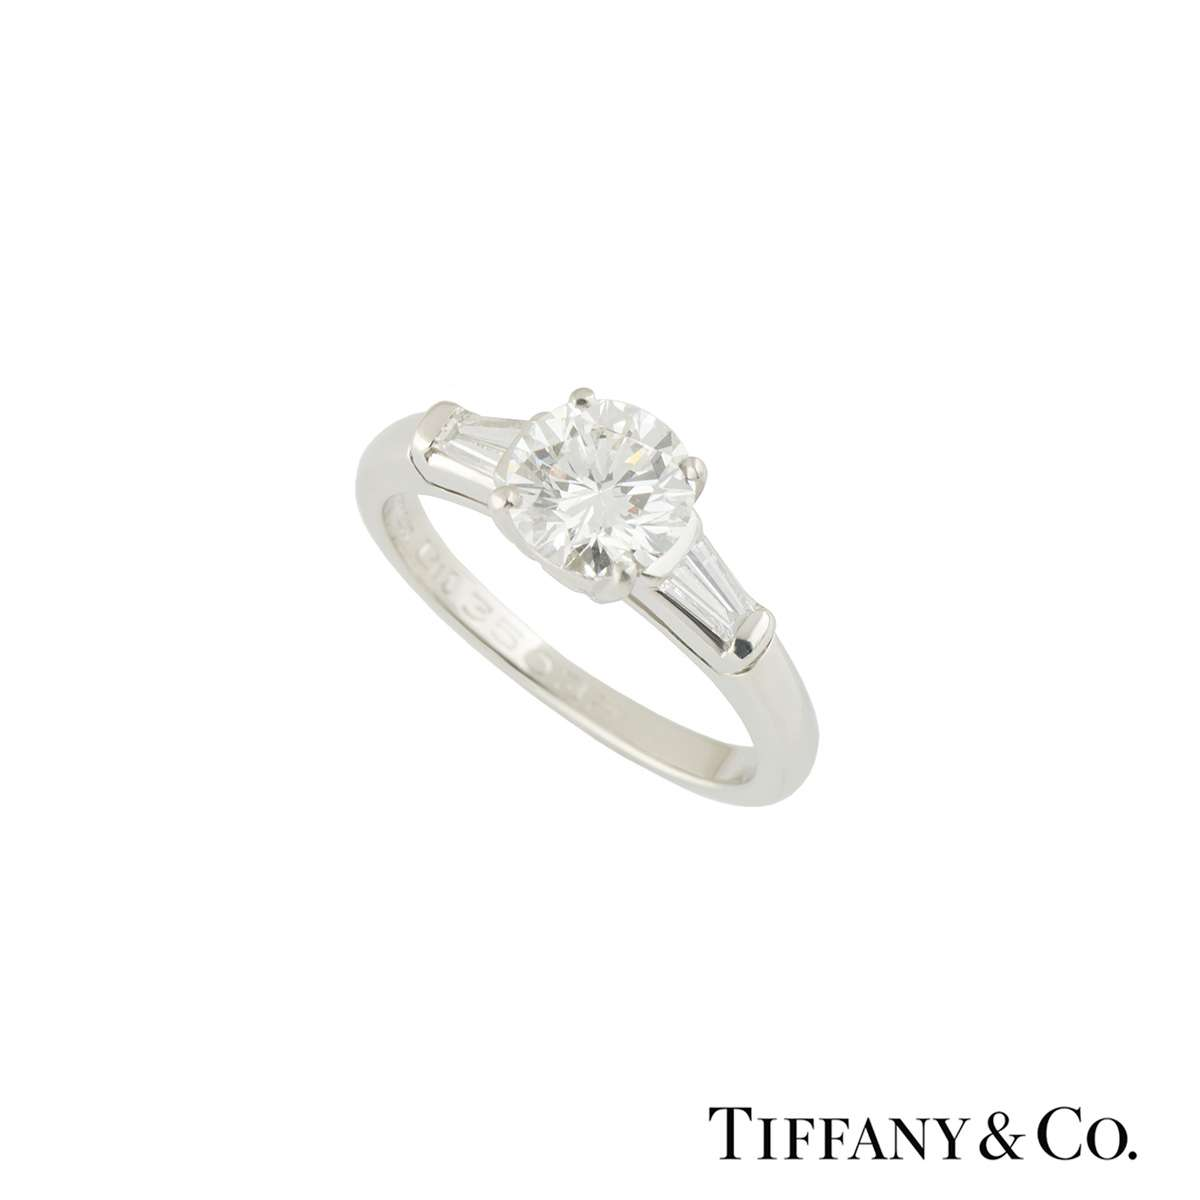 Tiffany & Co. Diamond Platinum Ring 1.17ct H/VVS2